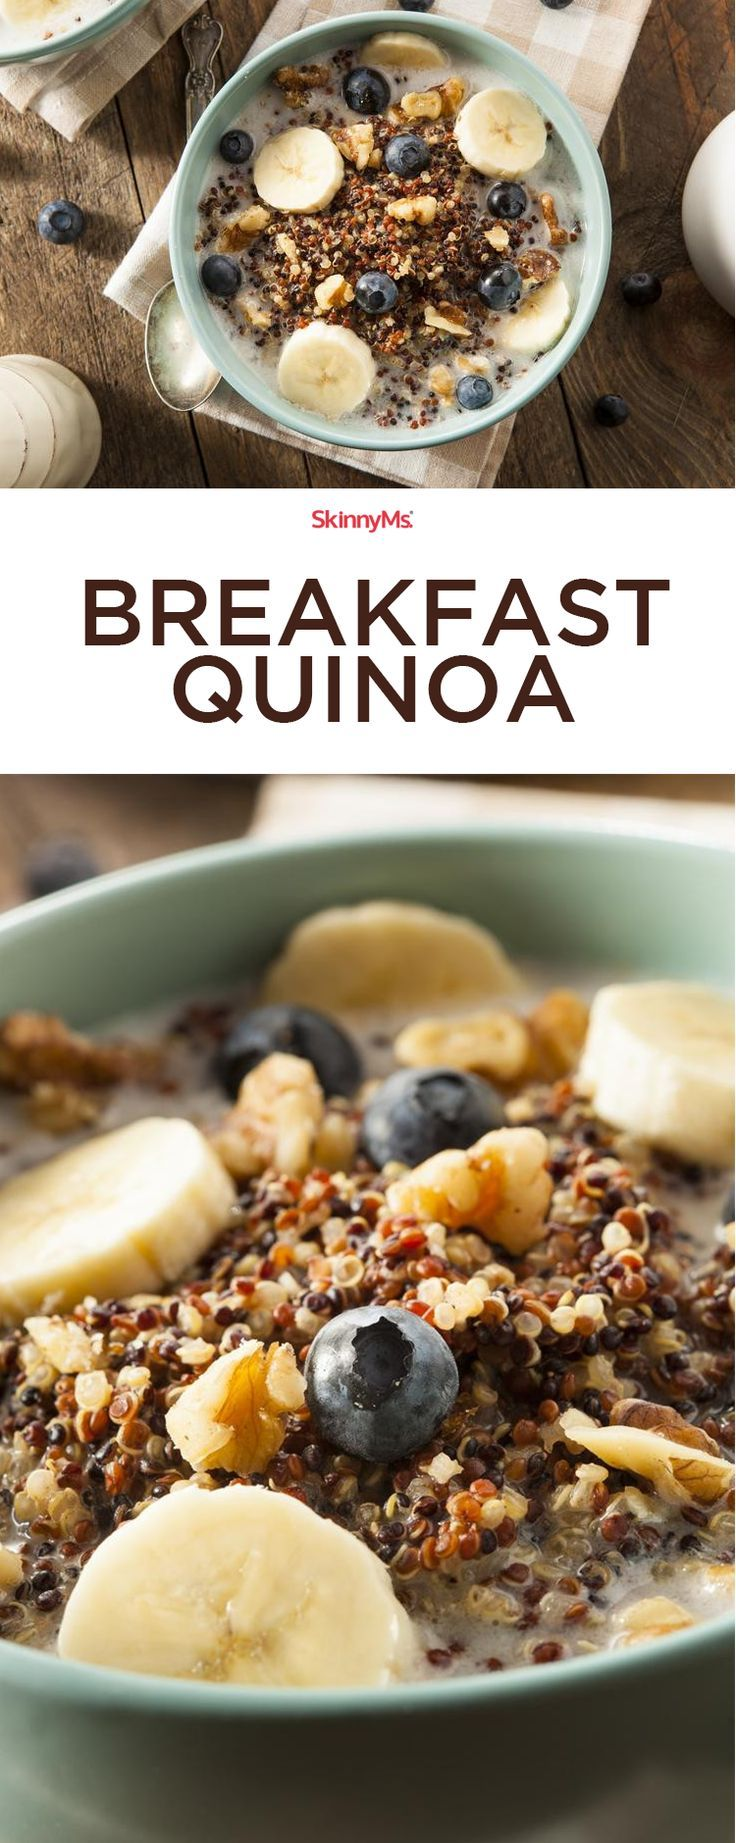 Photo of Breakfast Quinoa